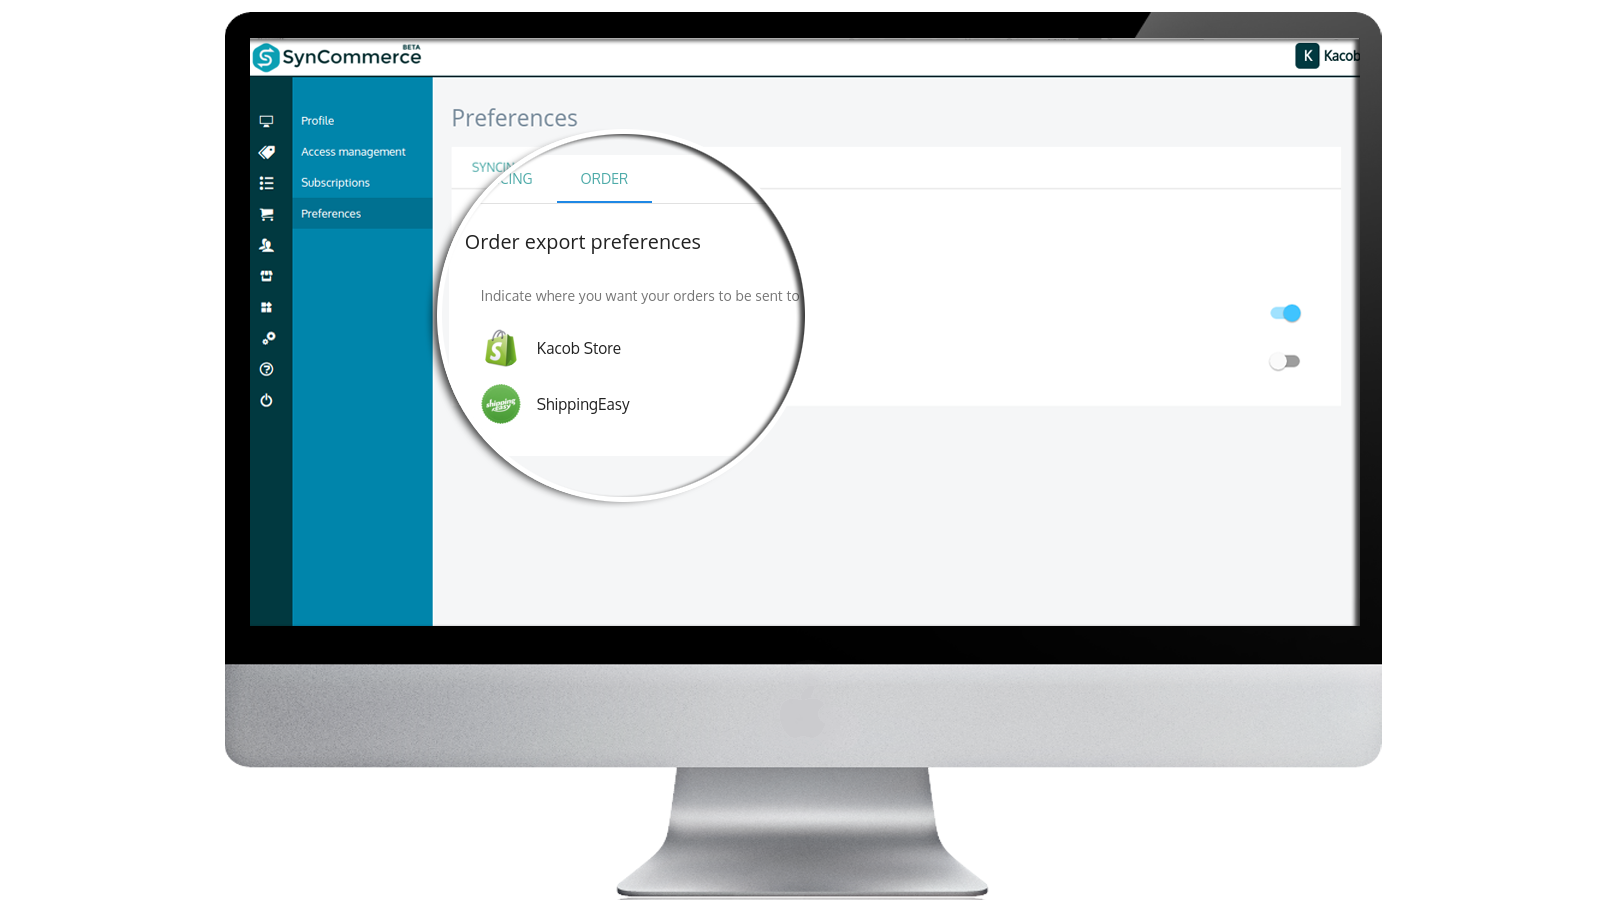 Choose where to automatically send your orders for order process